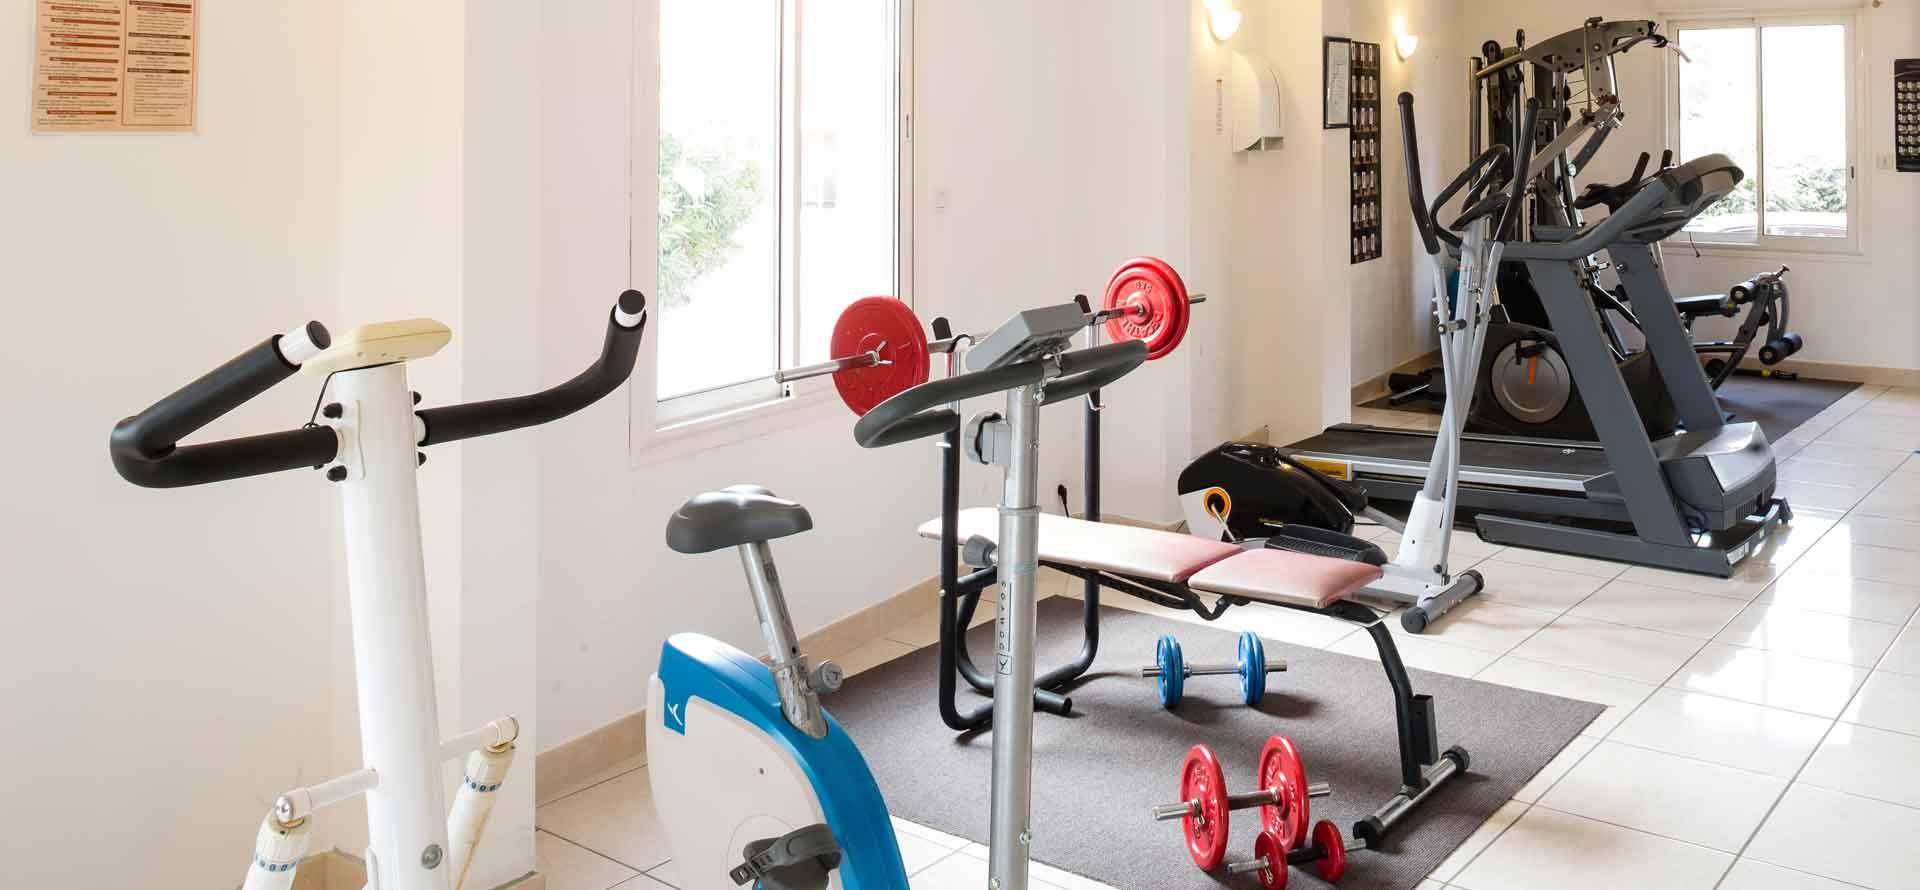 The gym and spa at the Palmyra Golf in Cap d'Agde